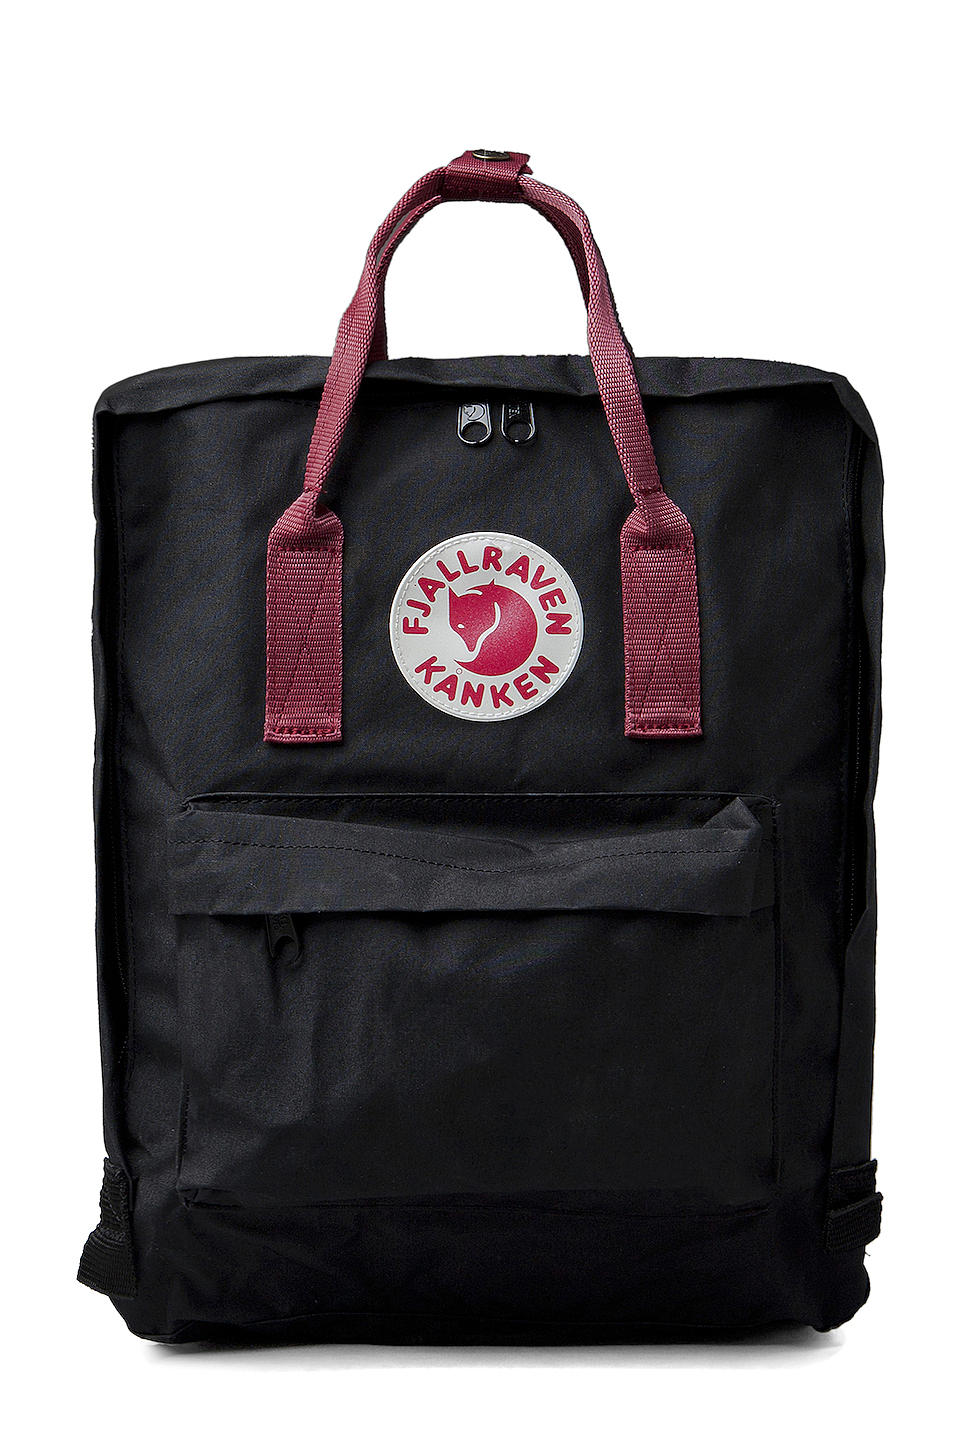 Fjallraven Kanken in Black/Ox Red